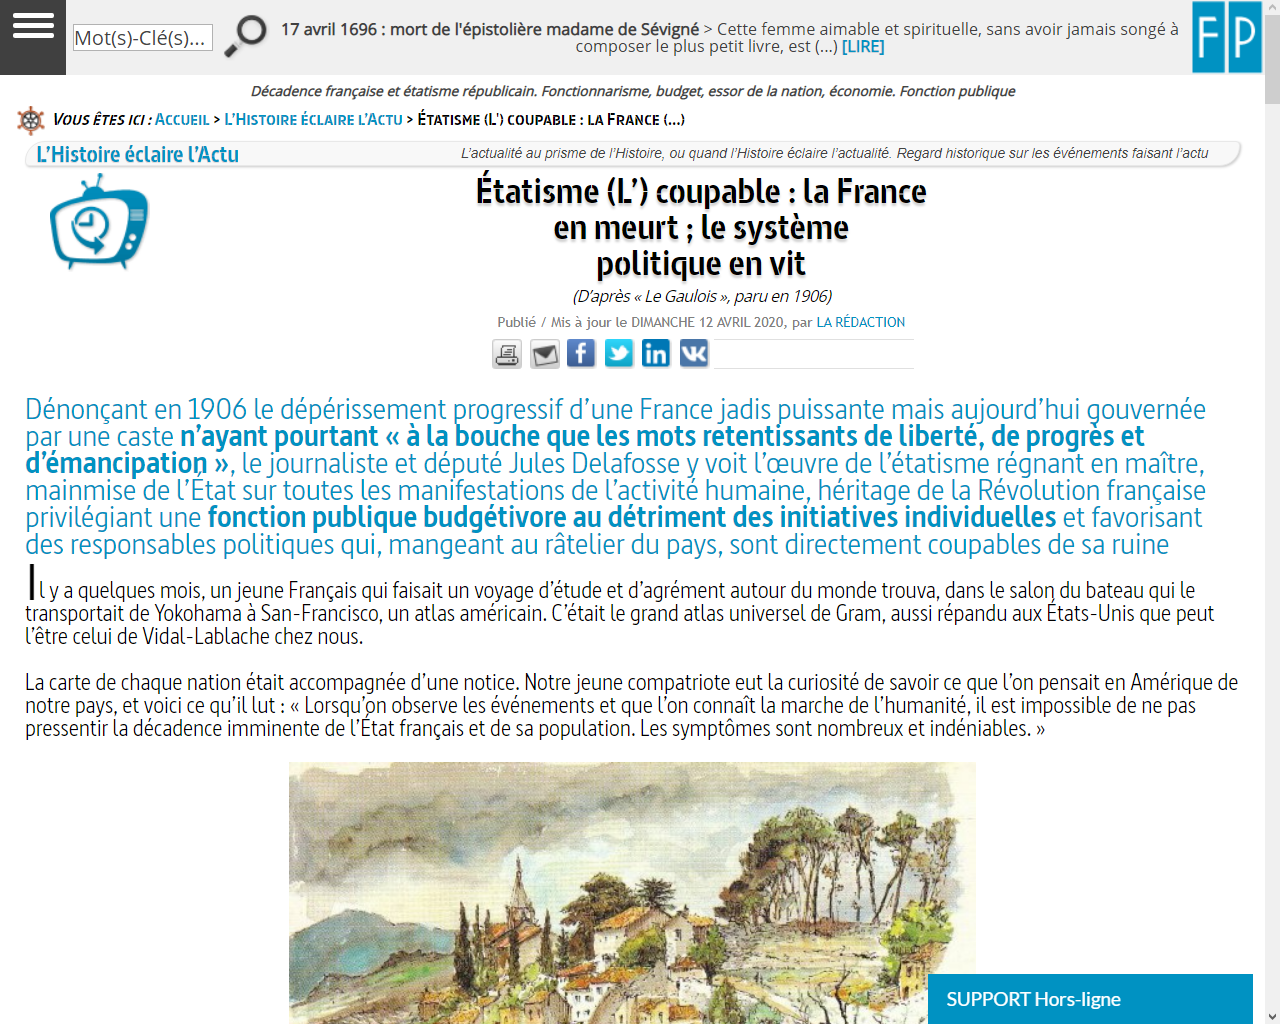 https://www.france-pittoresque.com/spip.php?article15541